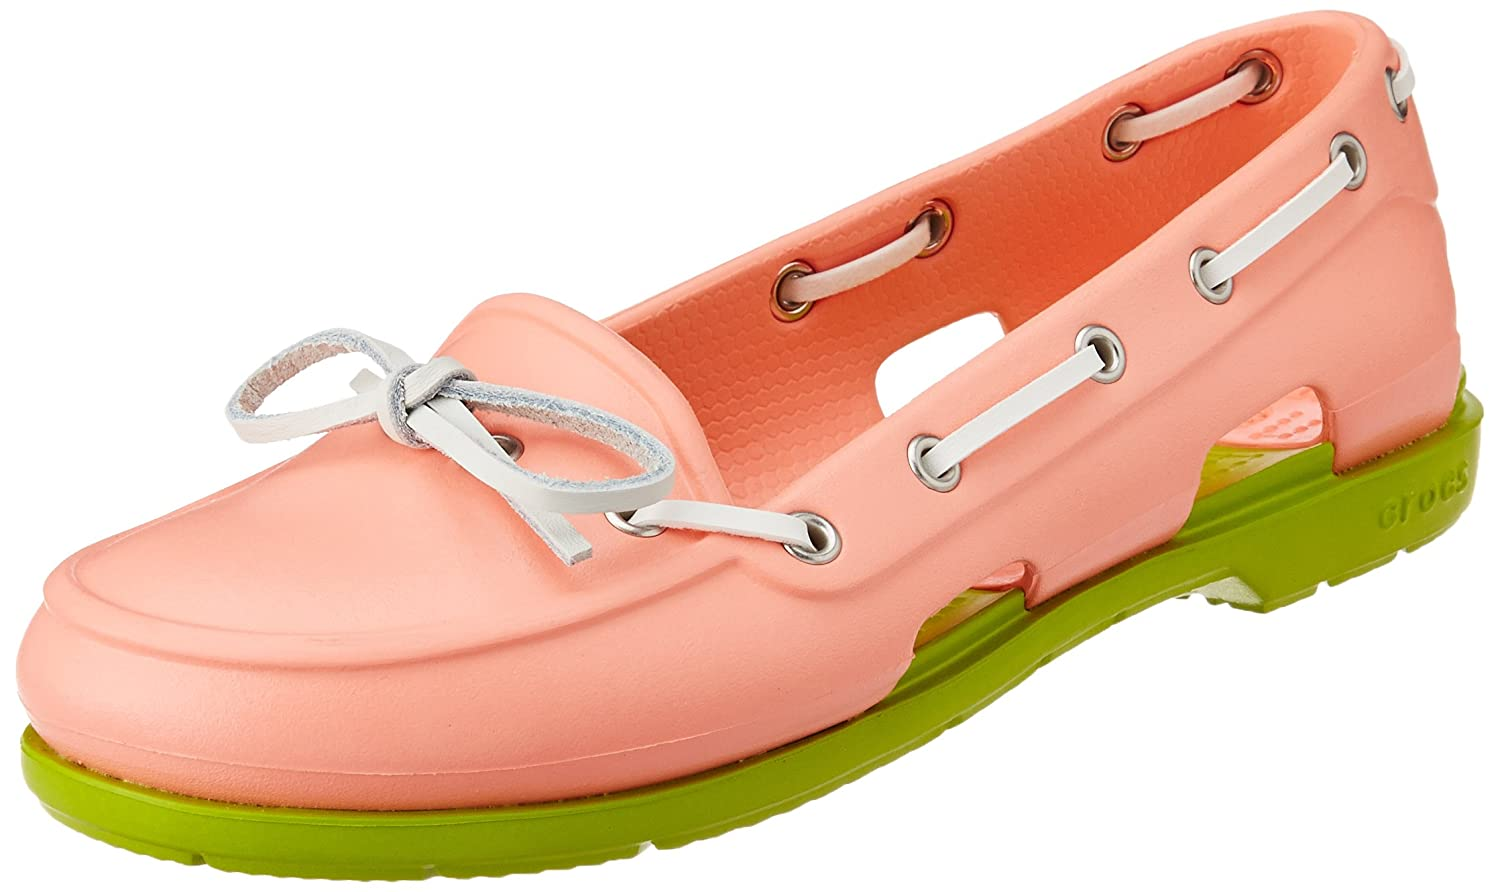 Buy crocs Women's Beach Line Boat Shoe Women Melon and Volt Green Rubber  Boat Shoes - W6 at Amazon.in